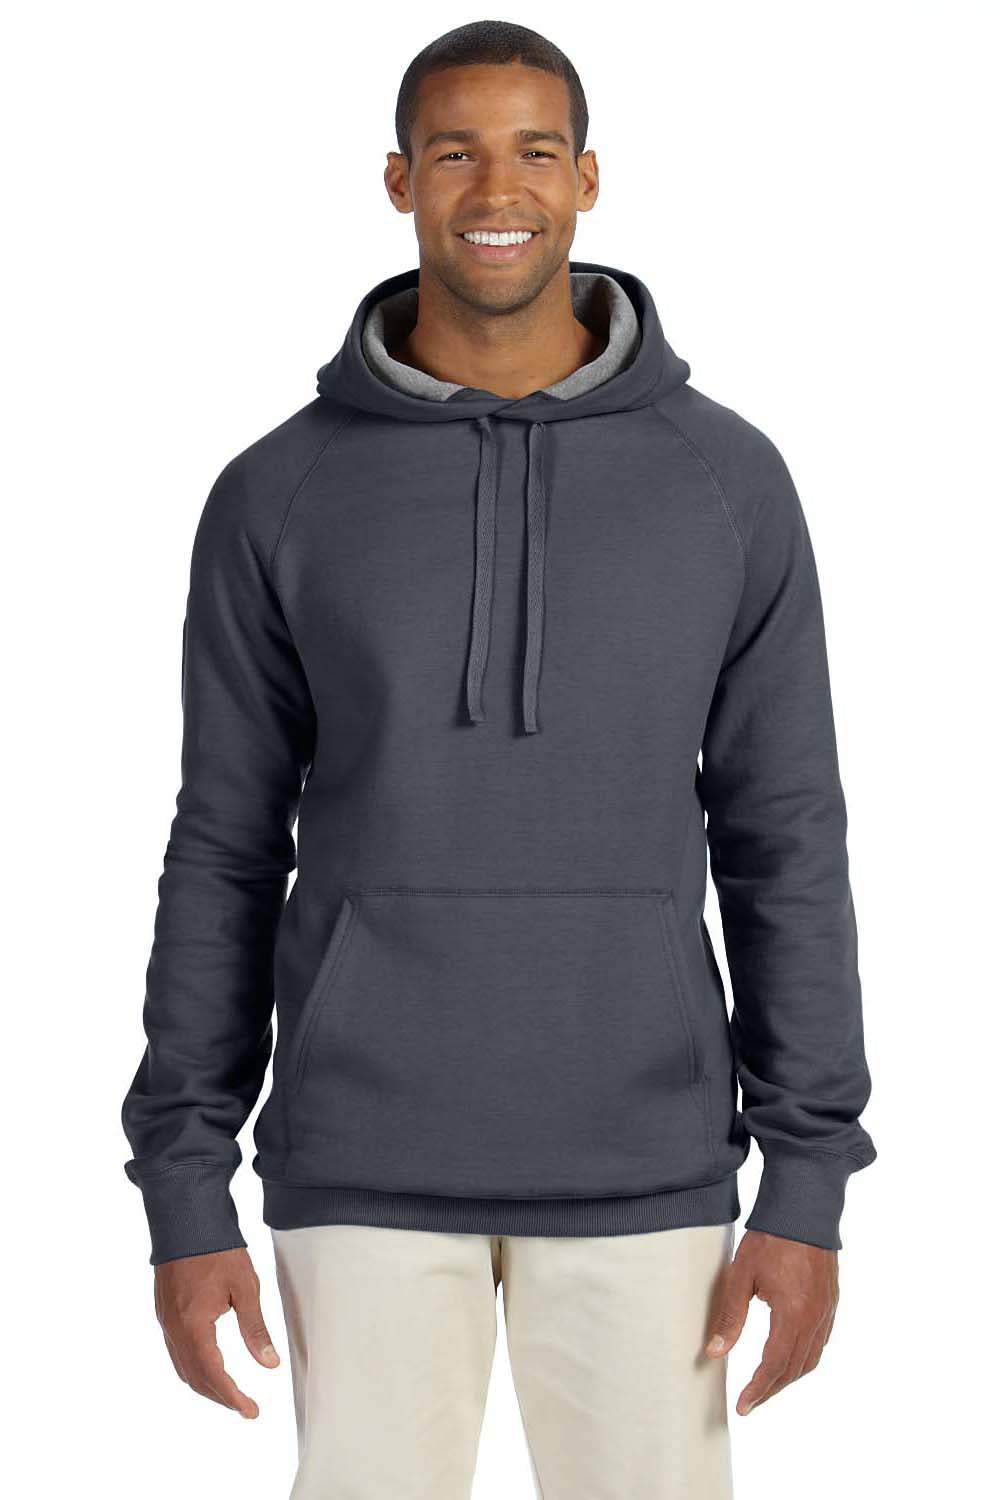 Hanes N270 Mens Nano Fleece Hooded Sweatshirt Hoodie Heather Charcoal Grey Front